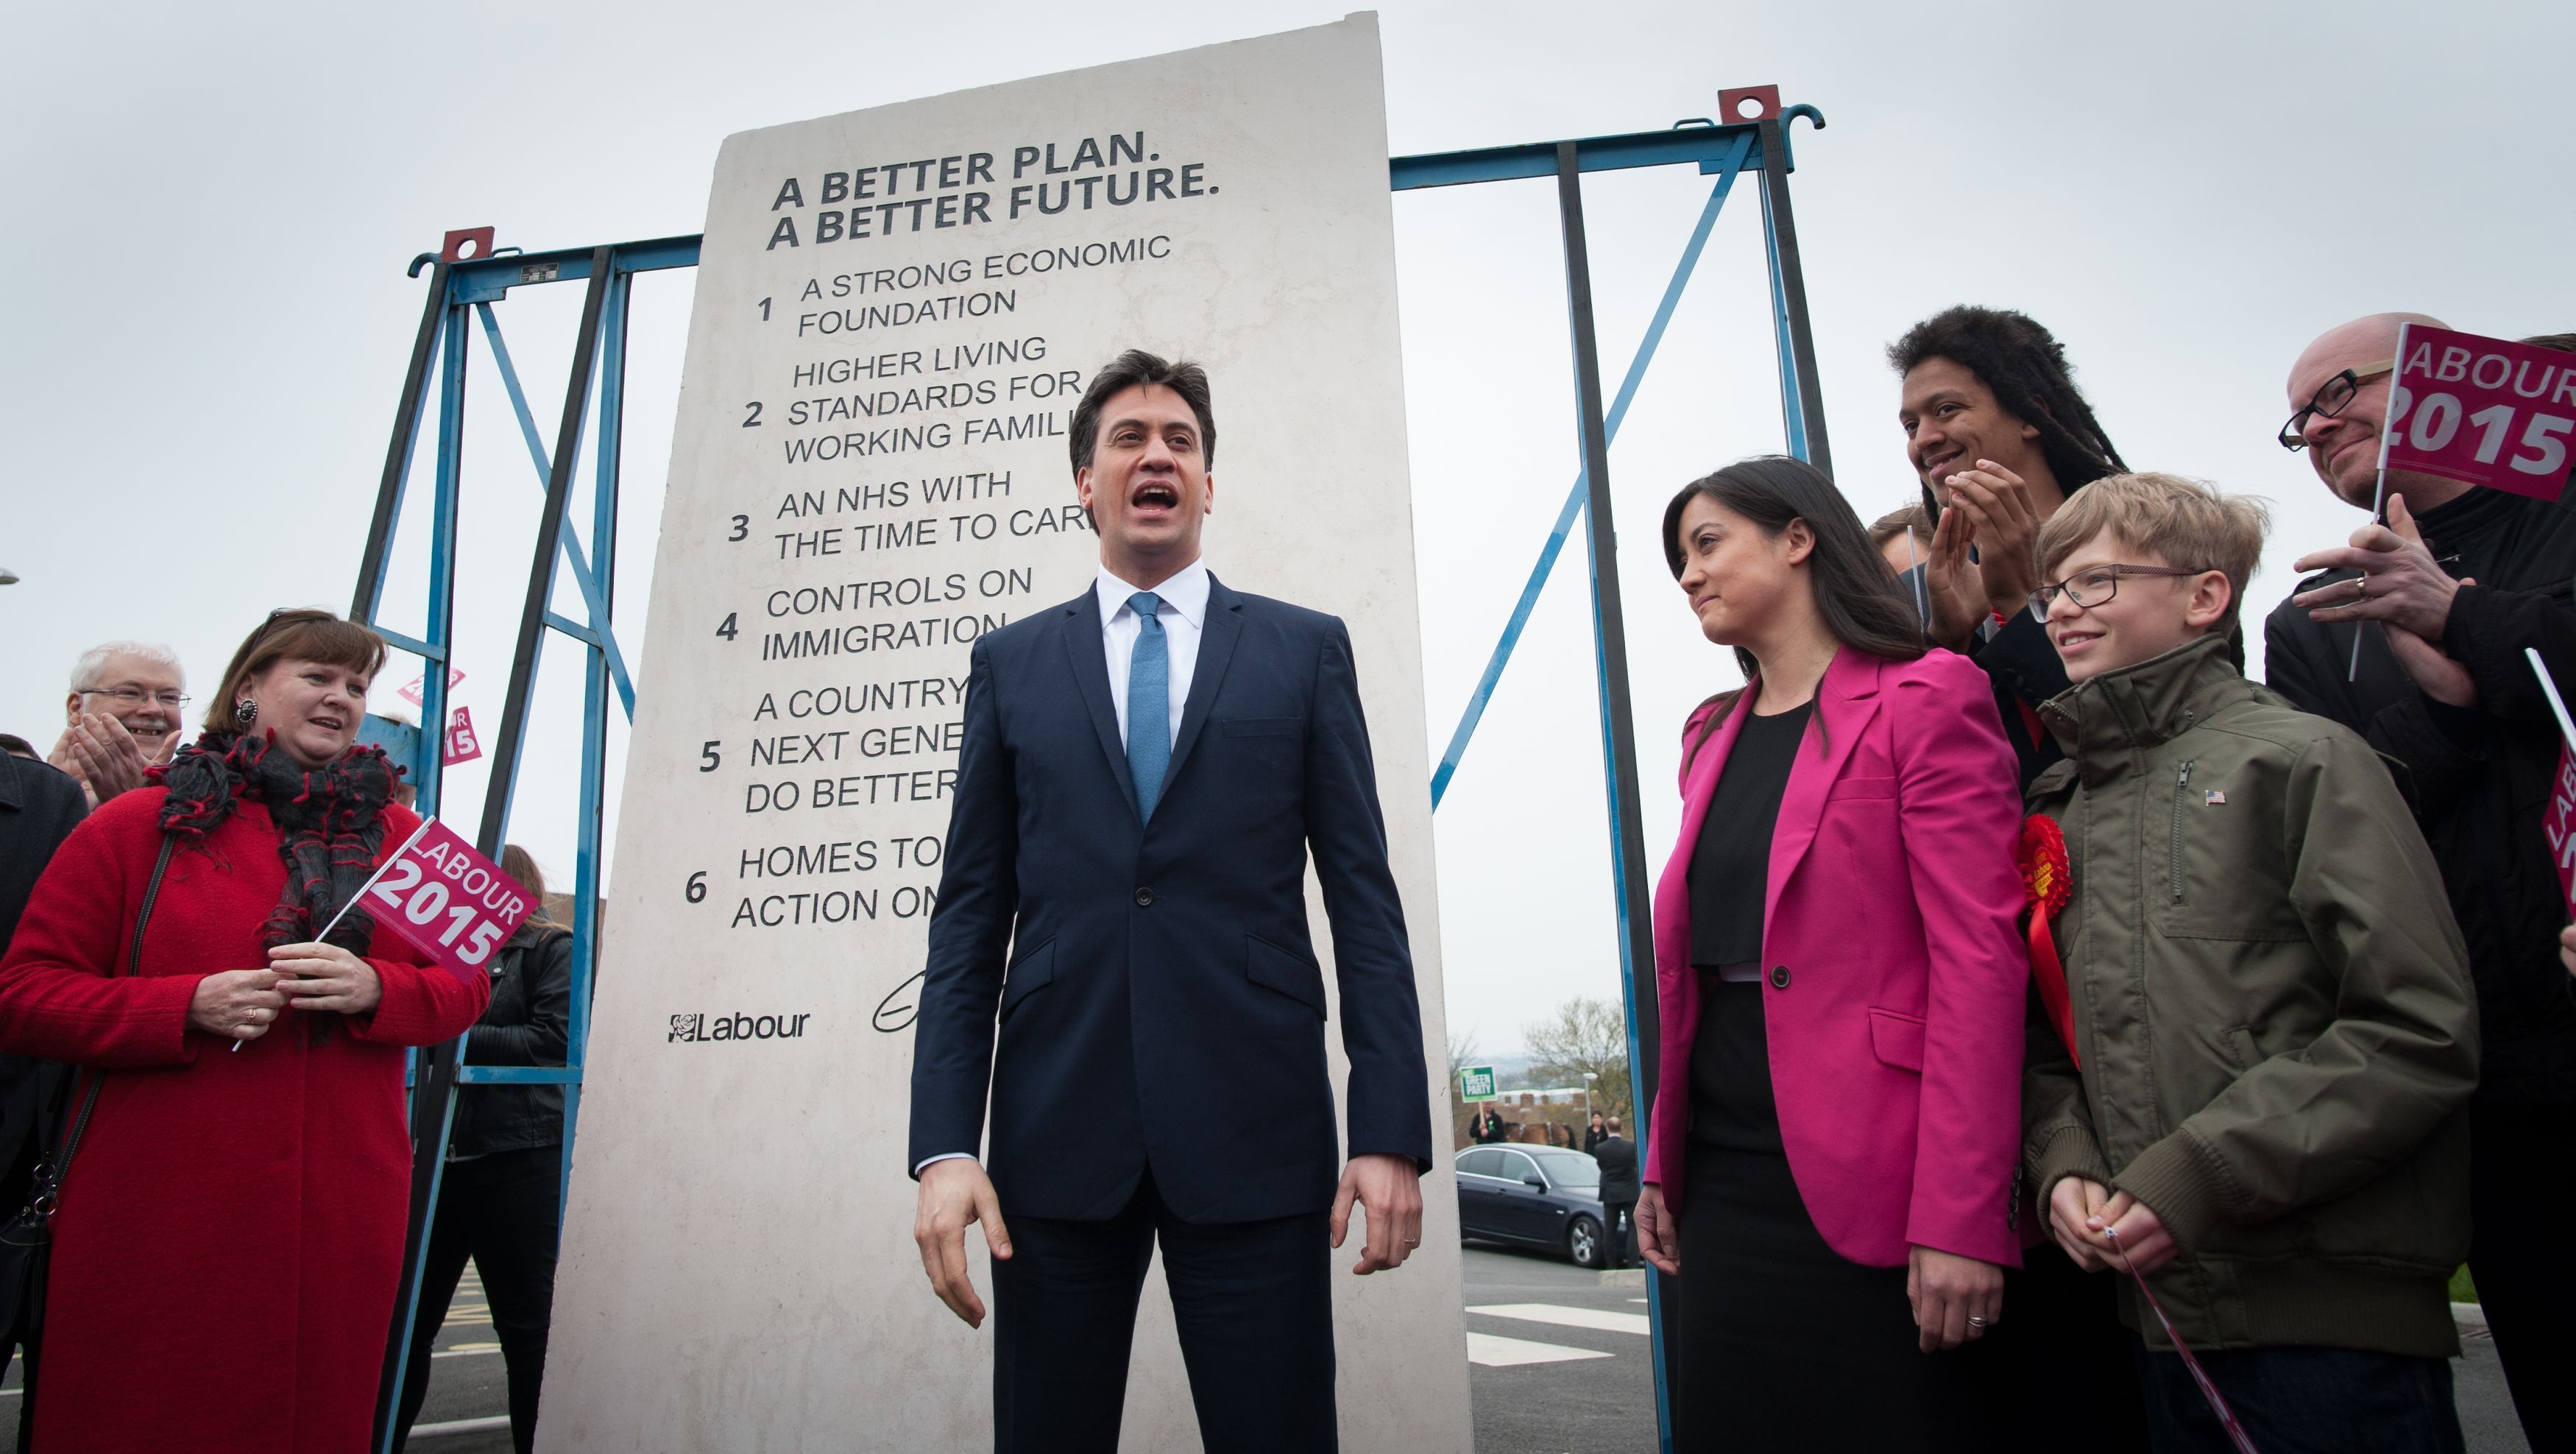 Ed Miliband unveiling Labour's pledges carved into a stone plinth in May 2015.